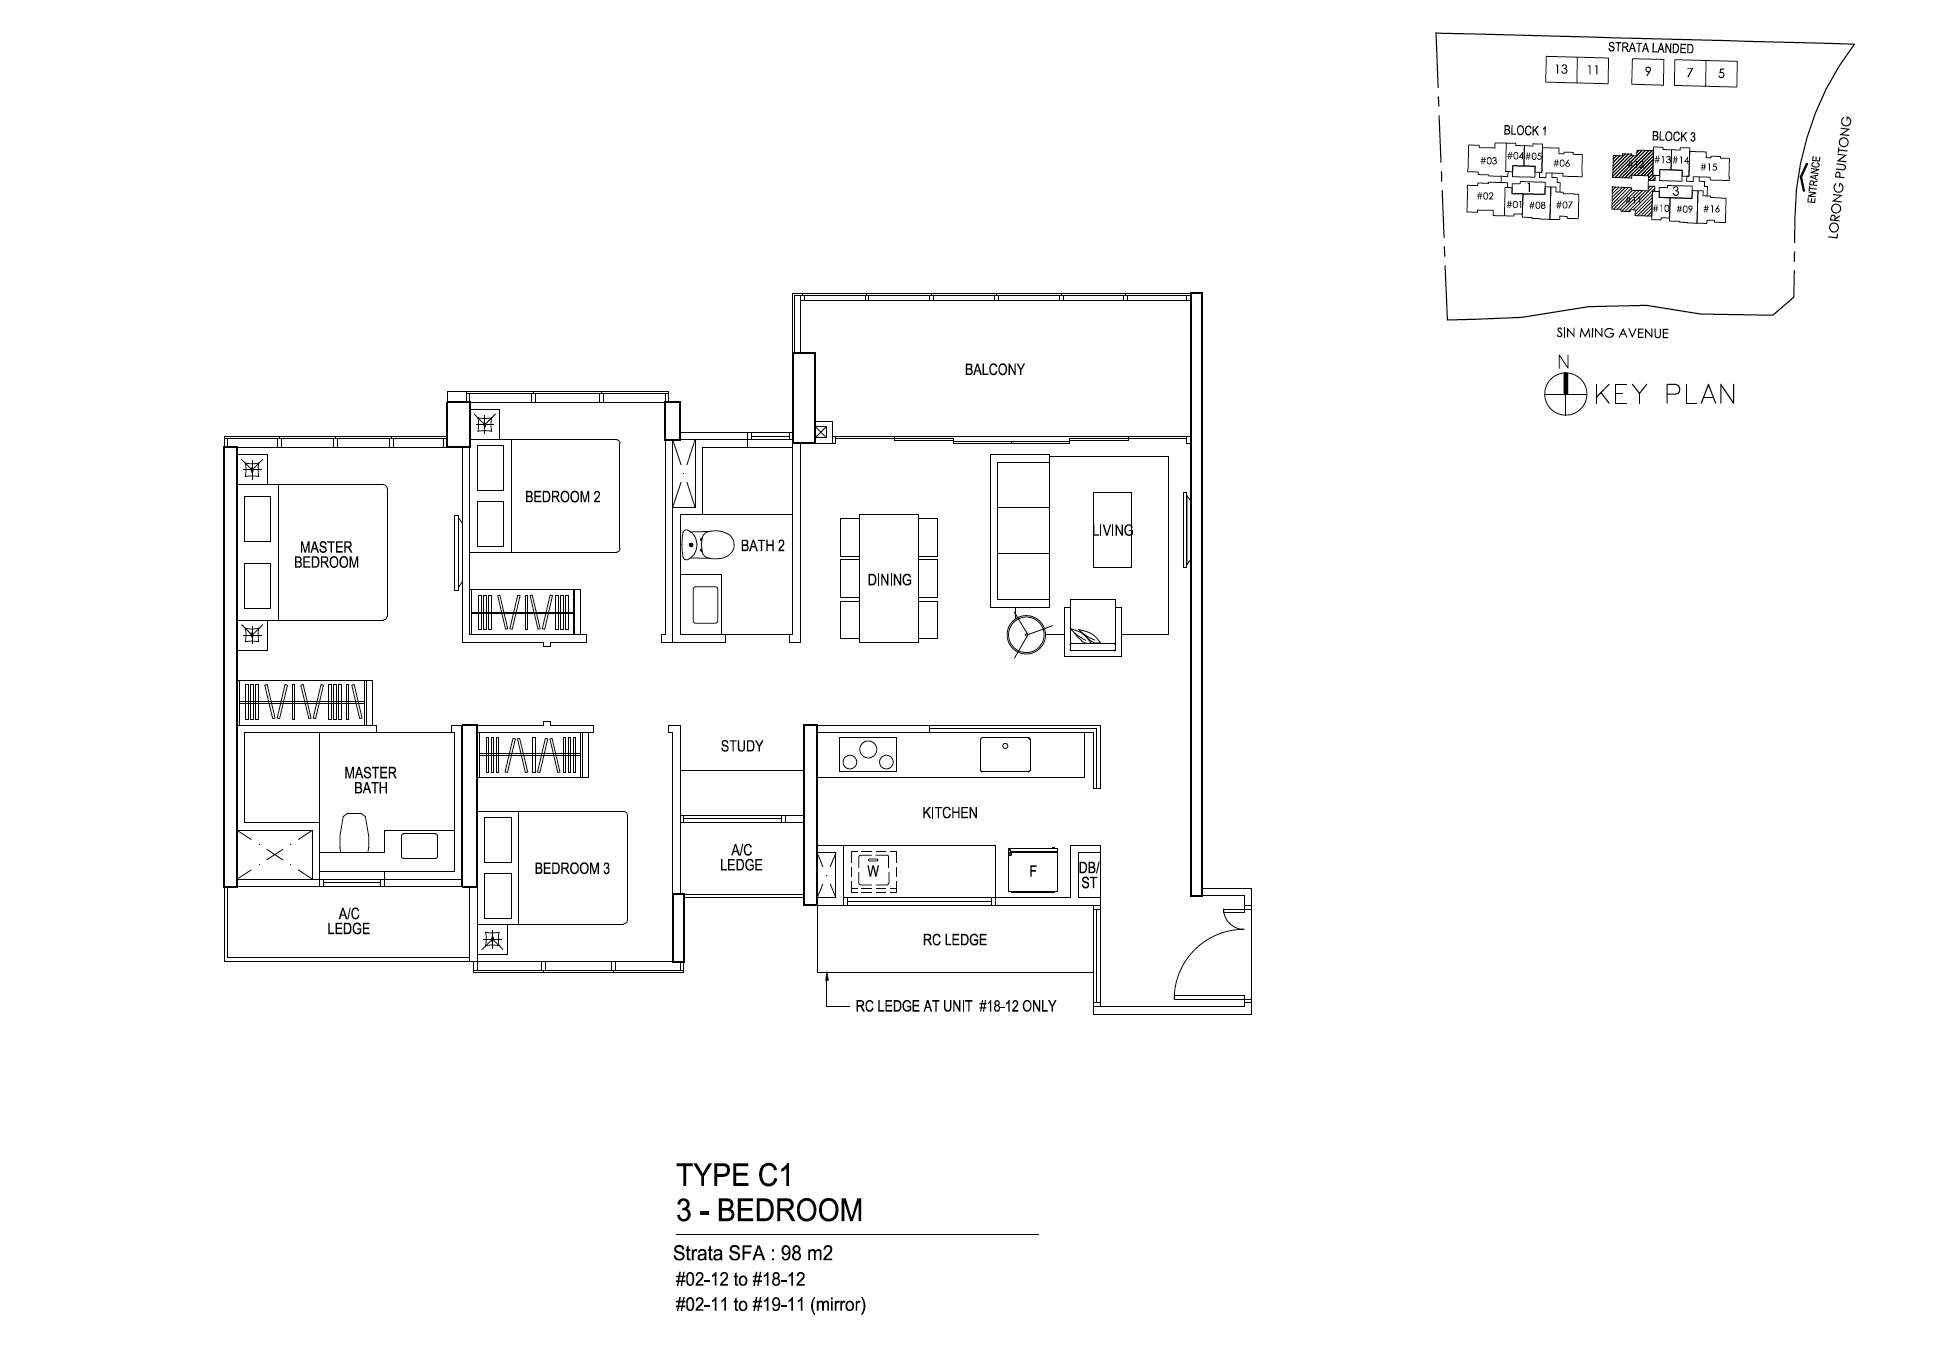 Thomson Impressions 3 bedroom floor plan type C1